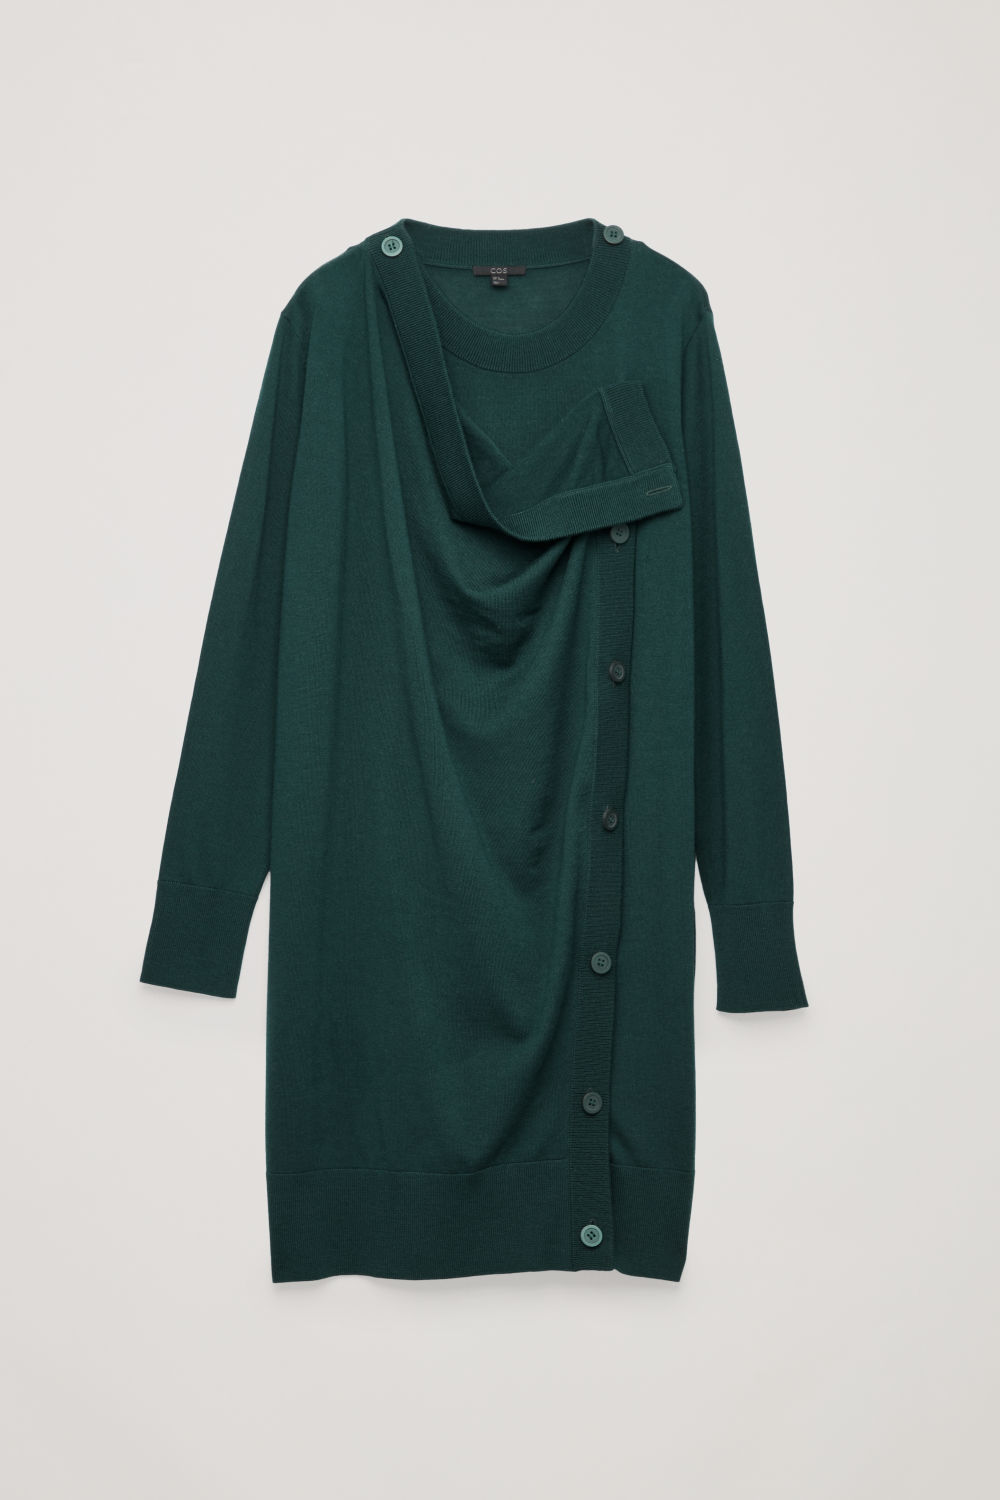 BUTTON-UP MERINO WOOL DRESS